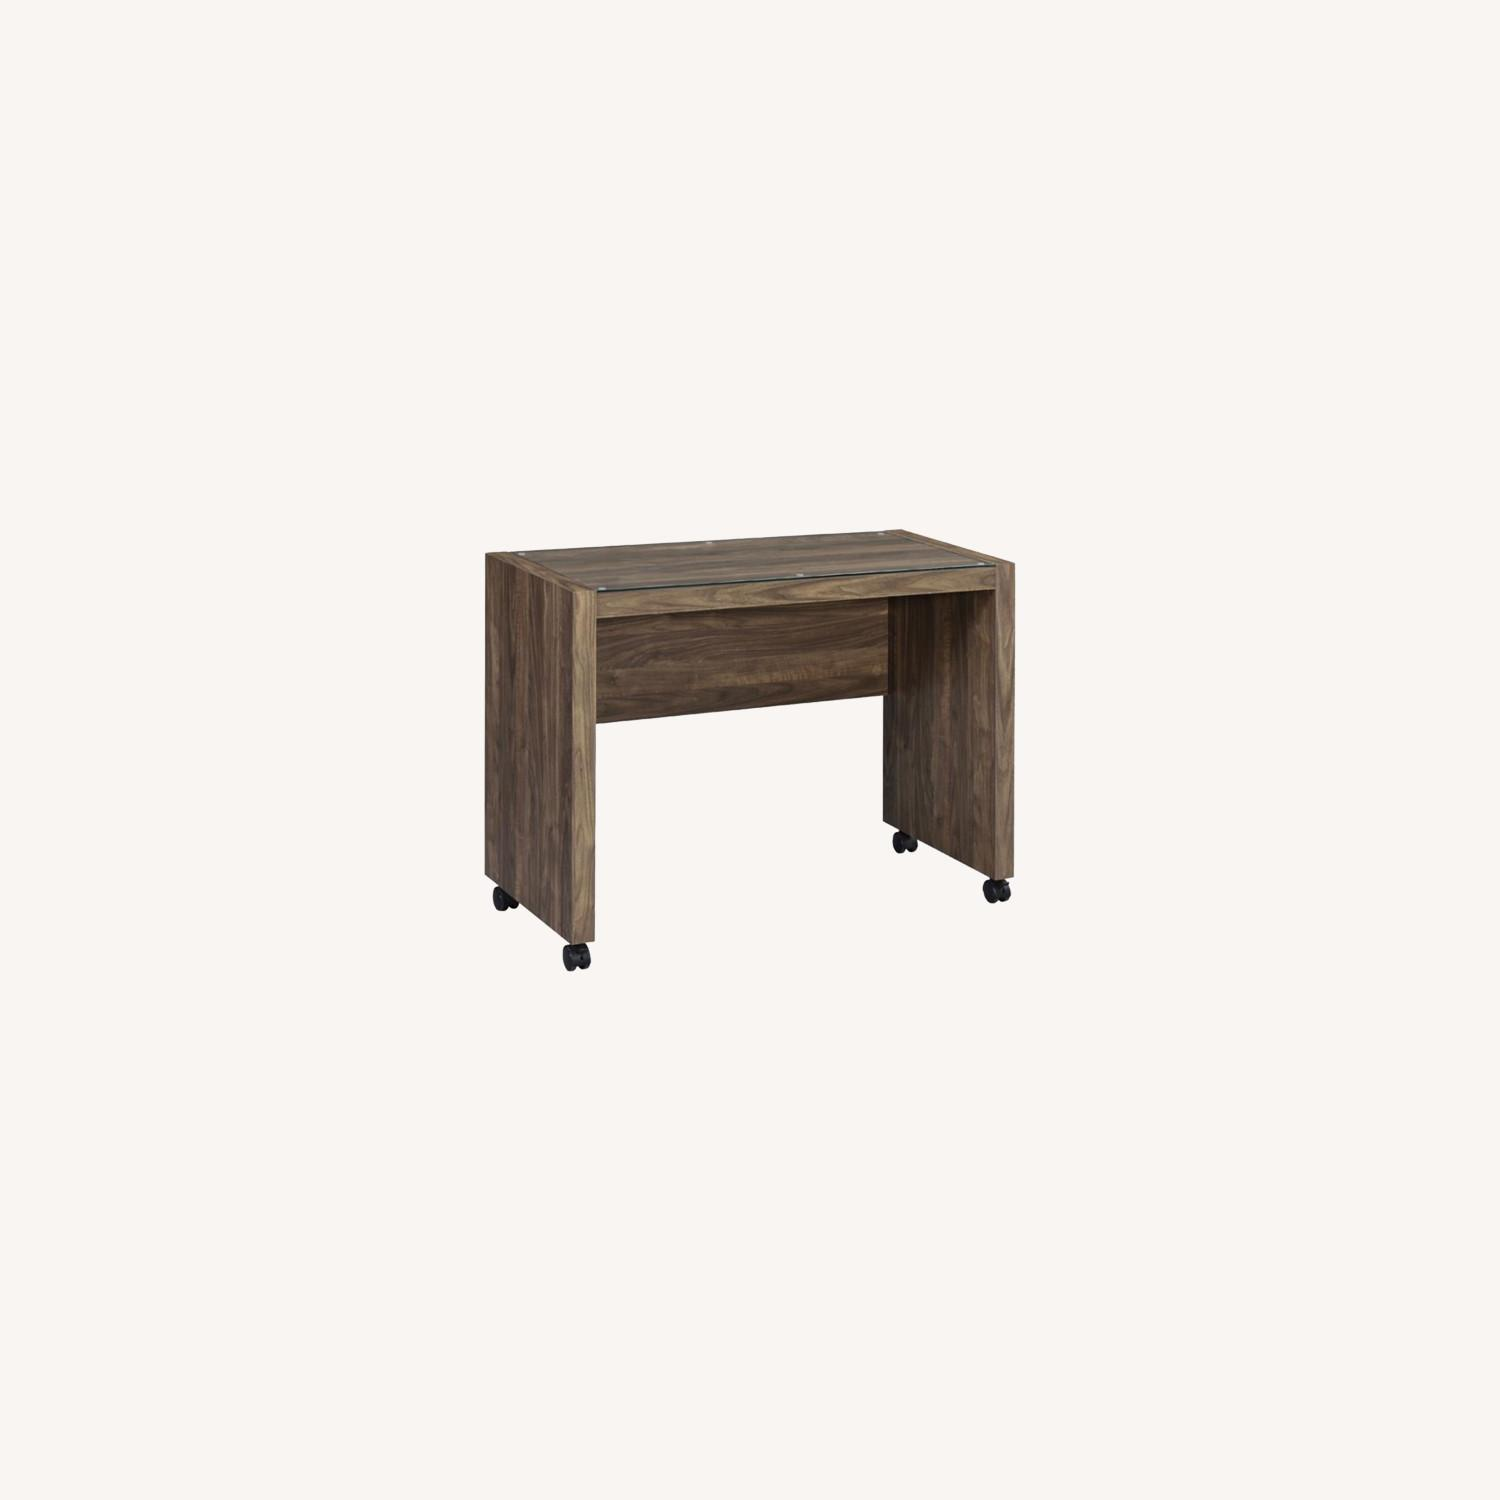 Mobile Return On Casters In Aged Walnut Finish  - image-6